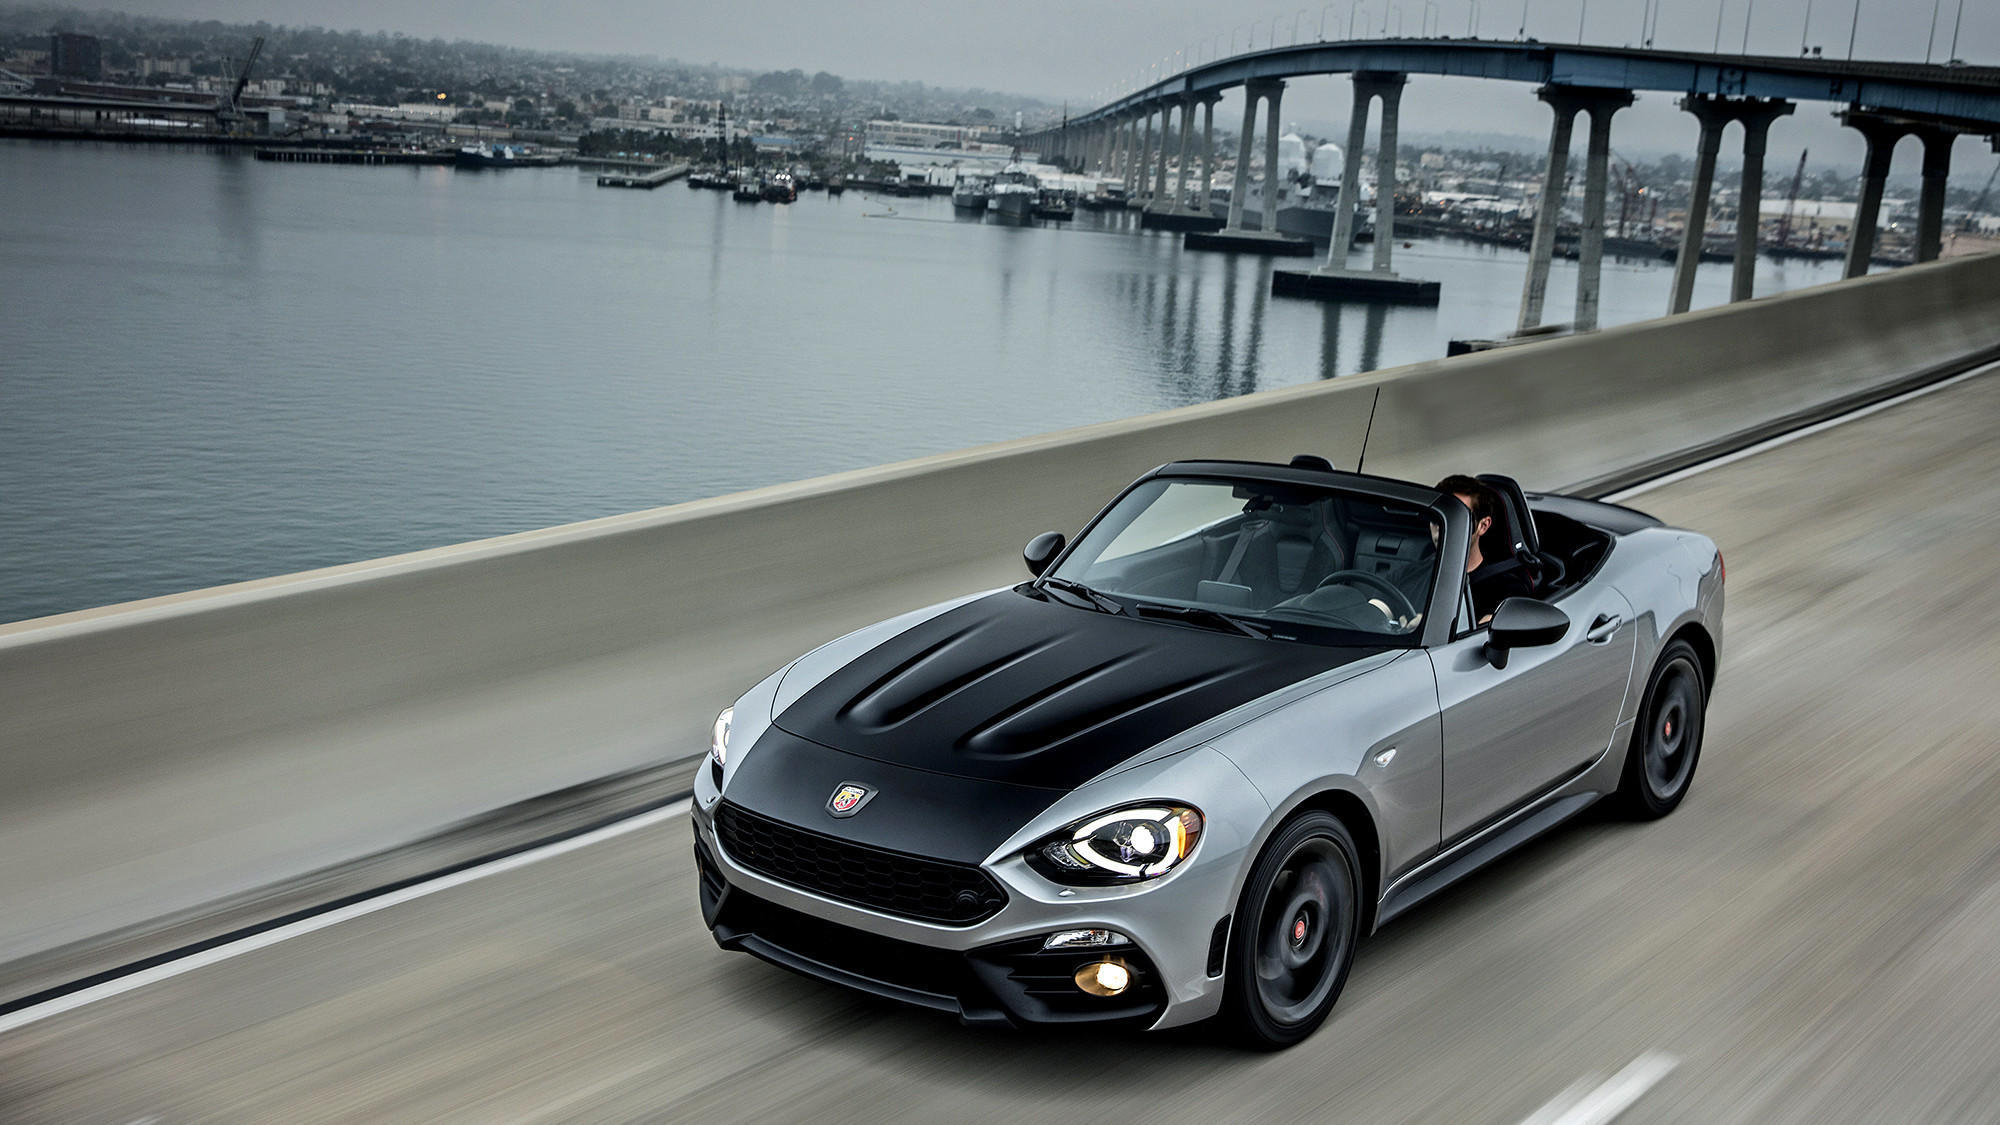 A peppy update to the 124 Spider Abarth, the sportiest of the Fiats